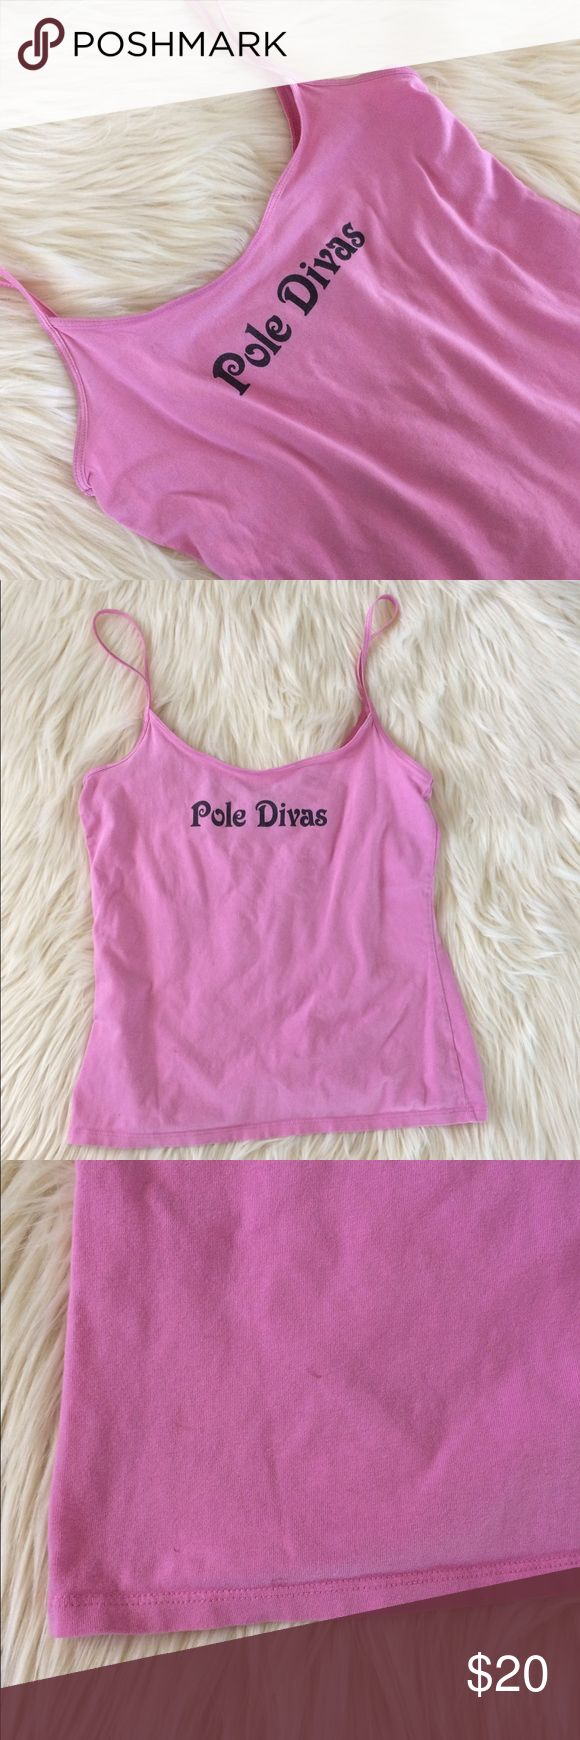 "Vintage Funny Tank Pink graphic tank features mermaid on the back and saying ""Pole Diva"" on the front. Women's size Small. Vintage. Minor discoloration shown 3rd pic. Always open to offers, awesome find!! Vintage Tops Tank Tops"